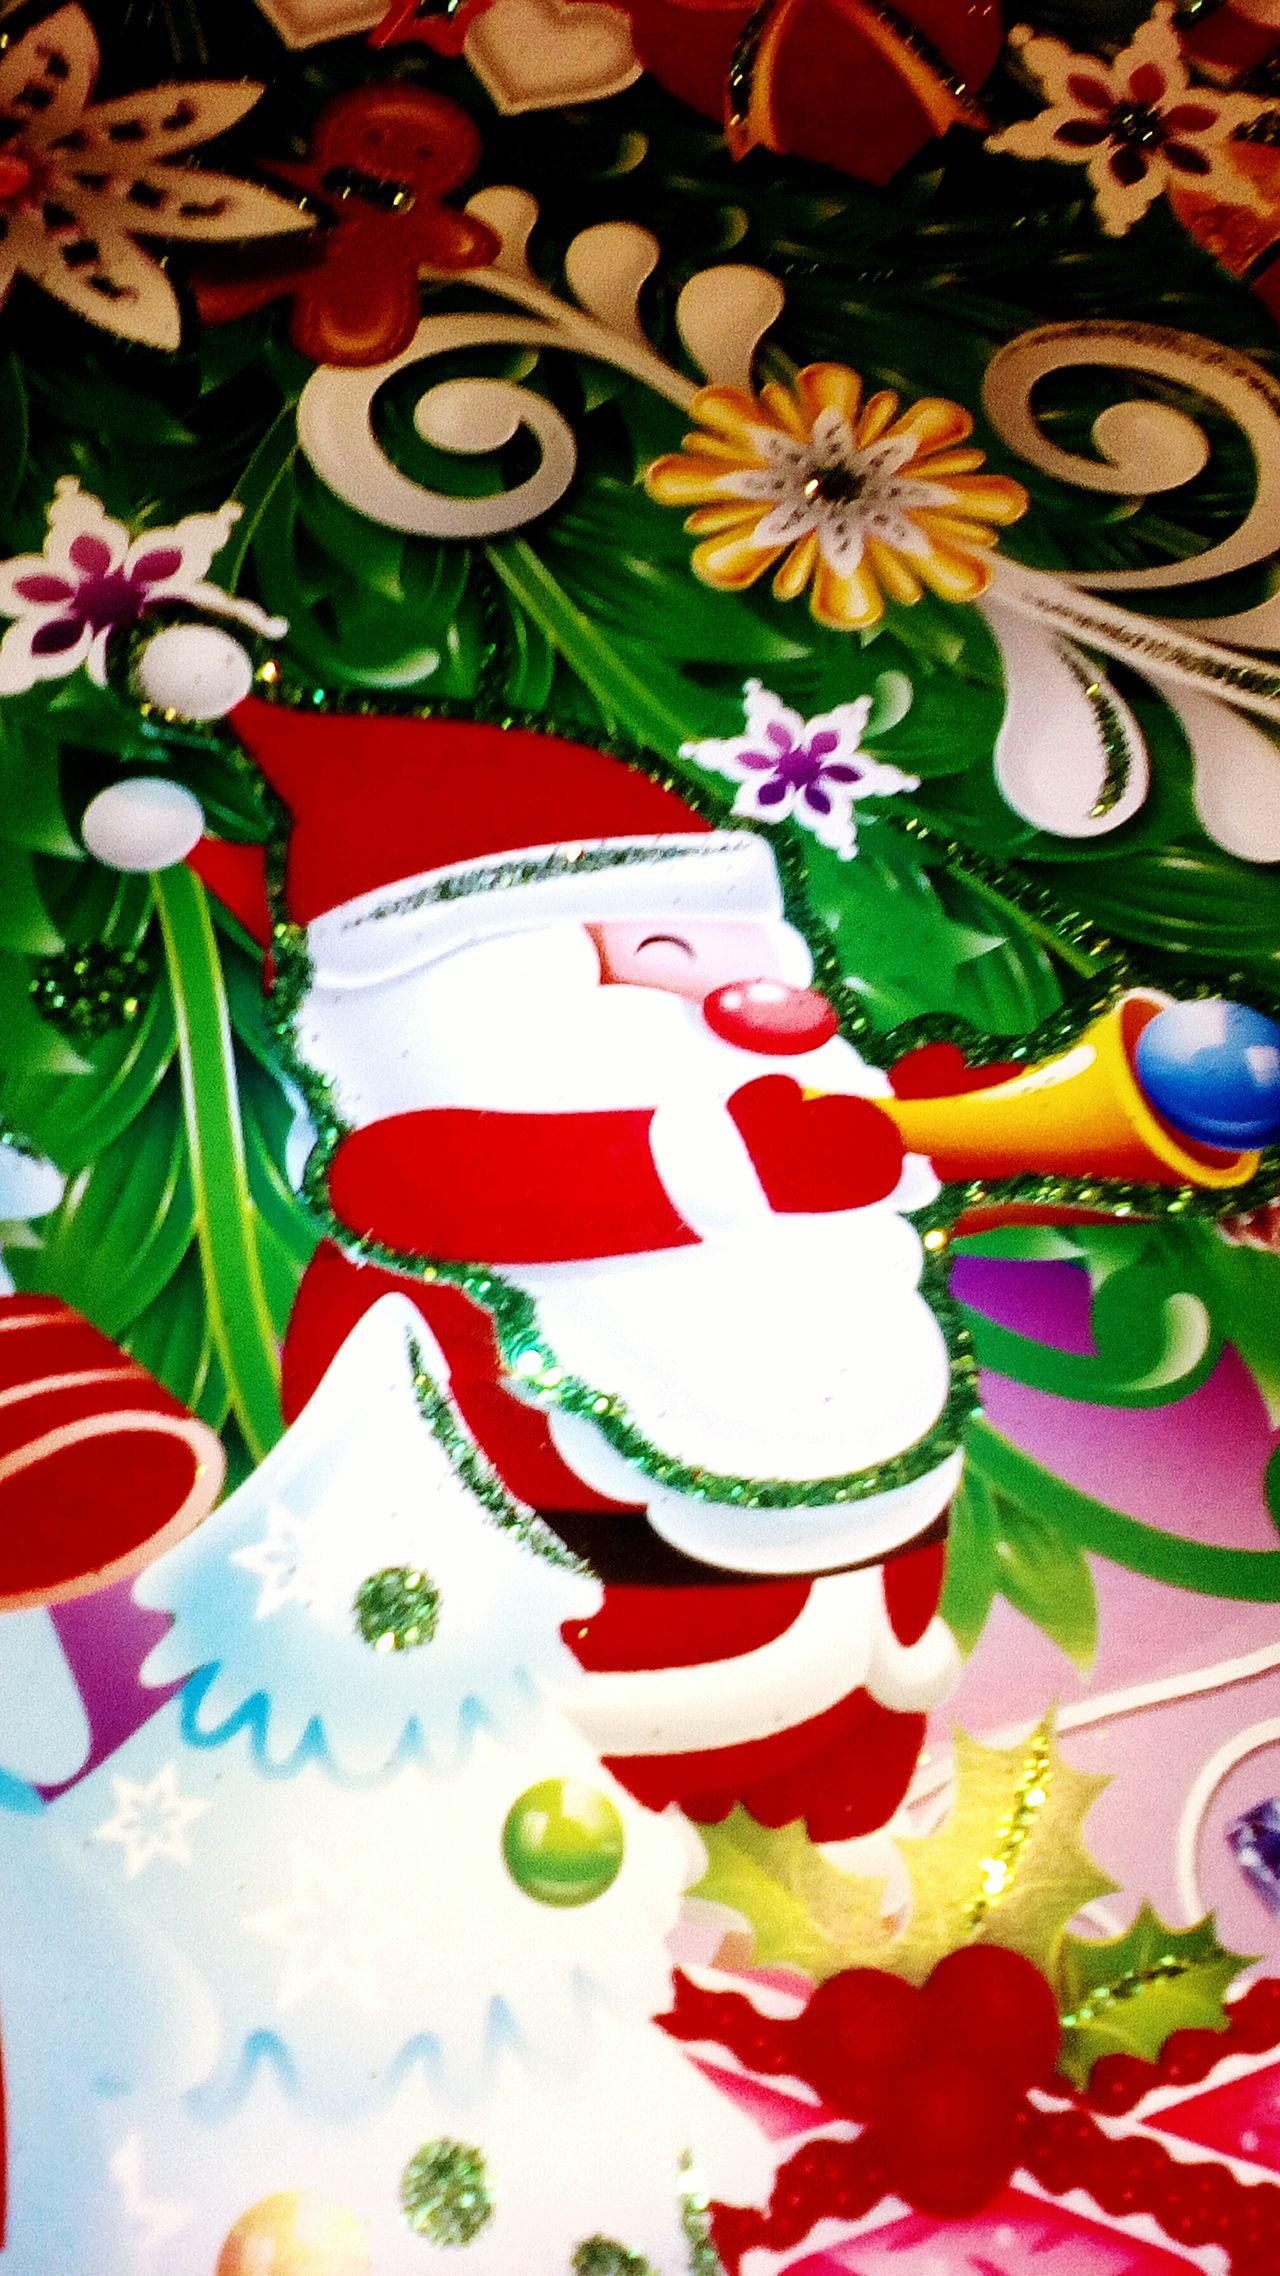 Capture Berlin Santa Claus Santaclaus Cristmas рождество санта сантаклаус Art And Craft Red Abstract Green Color Art Product Composition Watercolor Painting No People